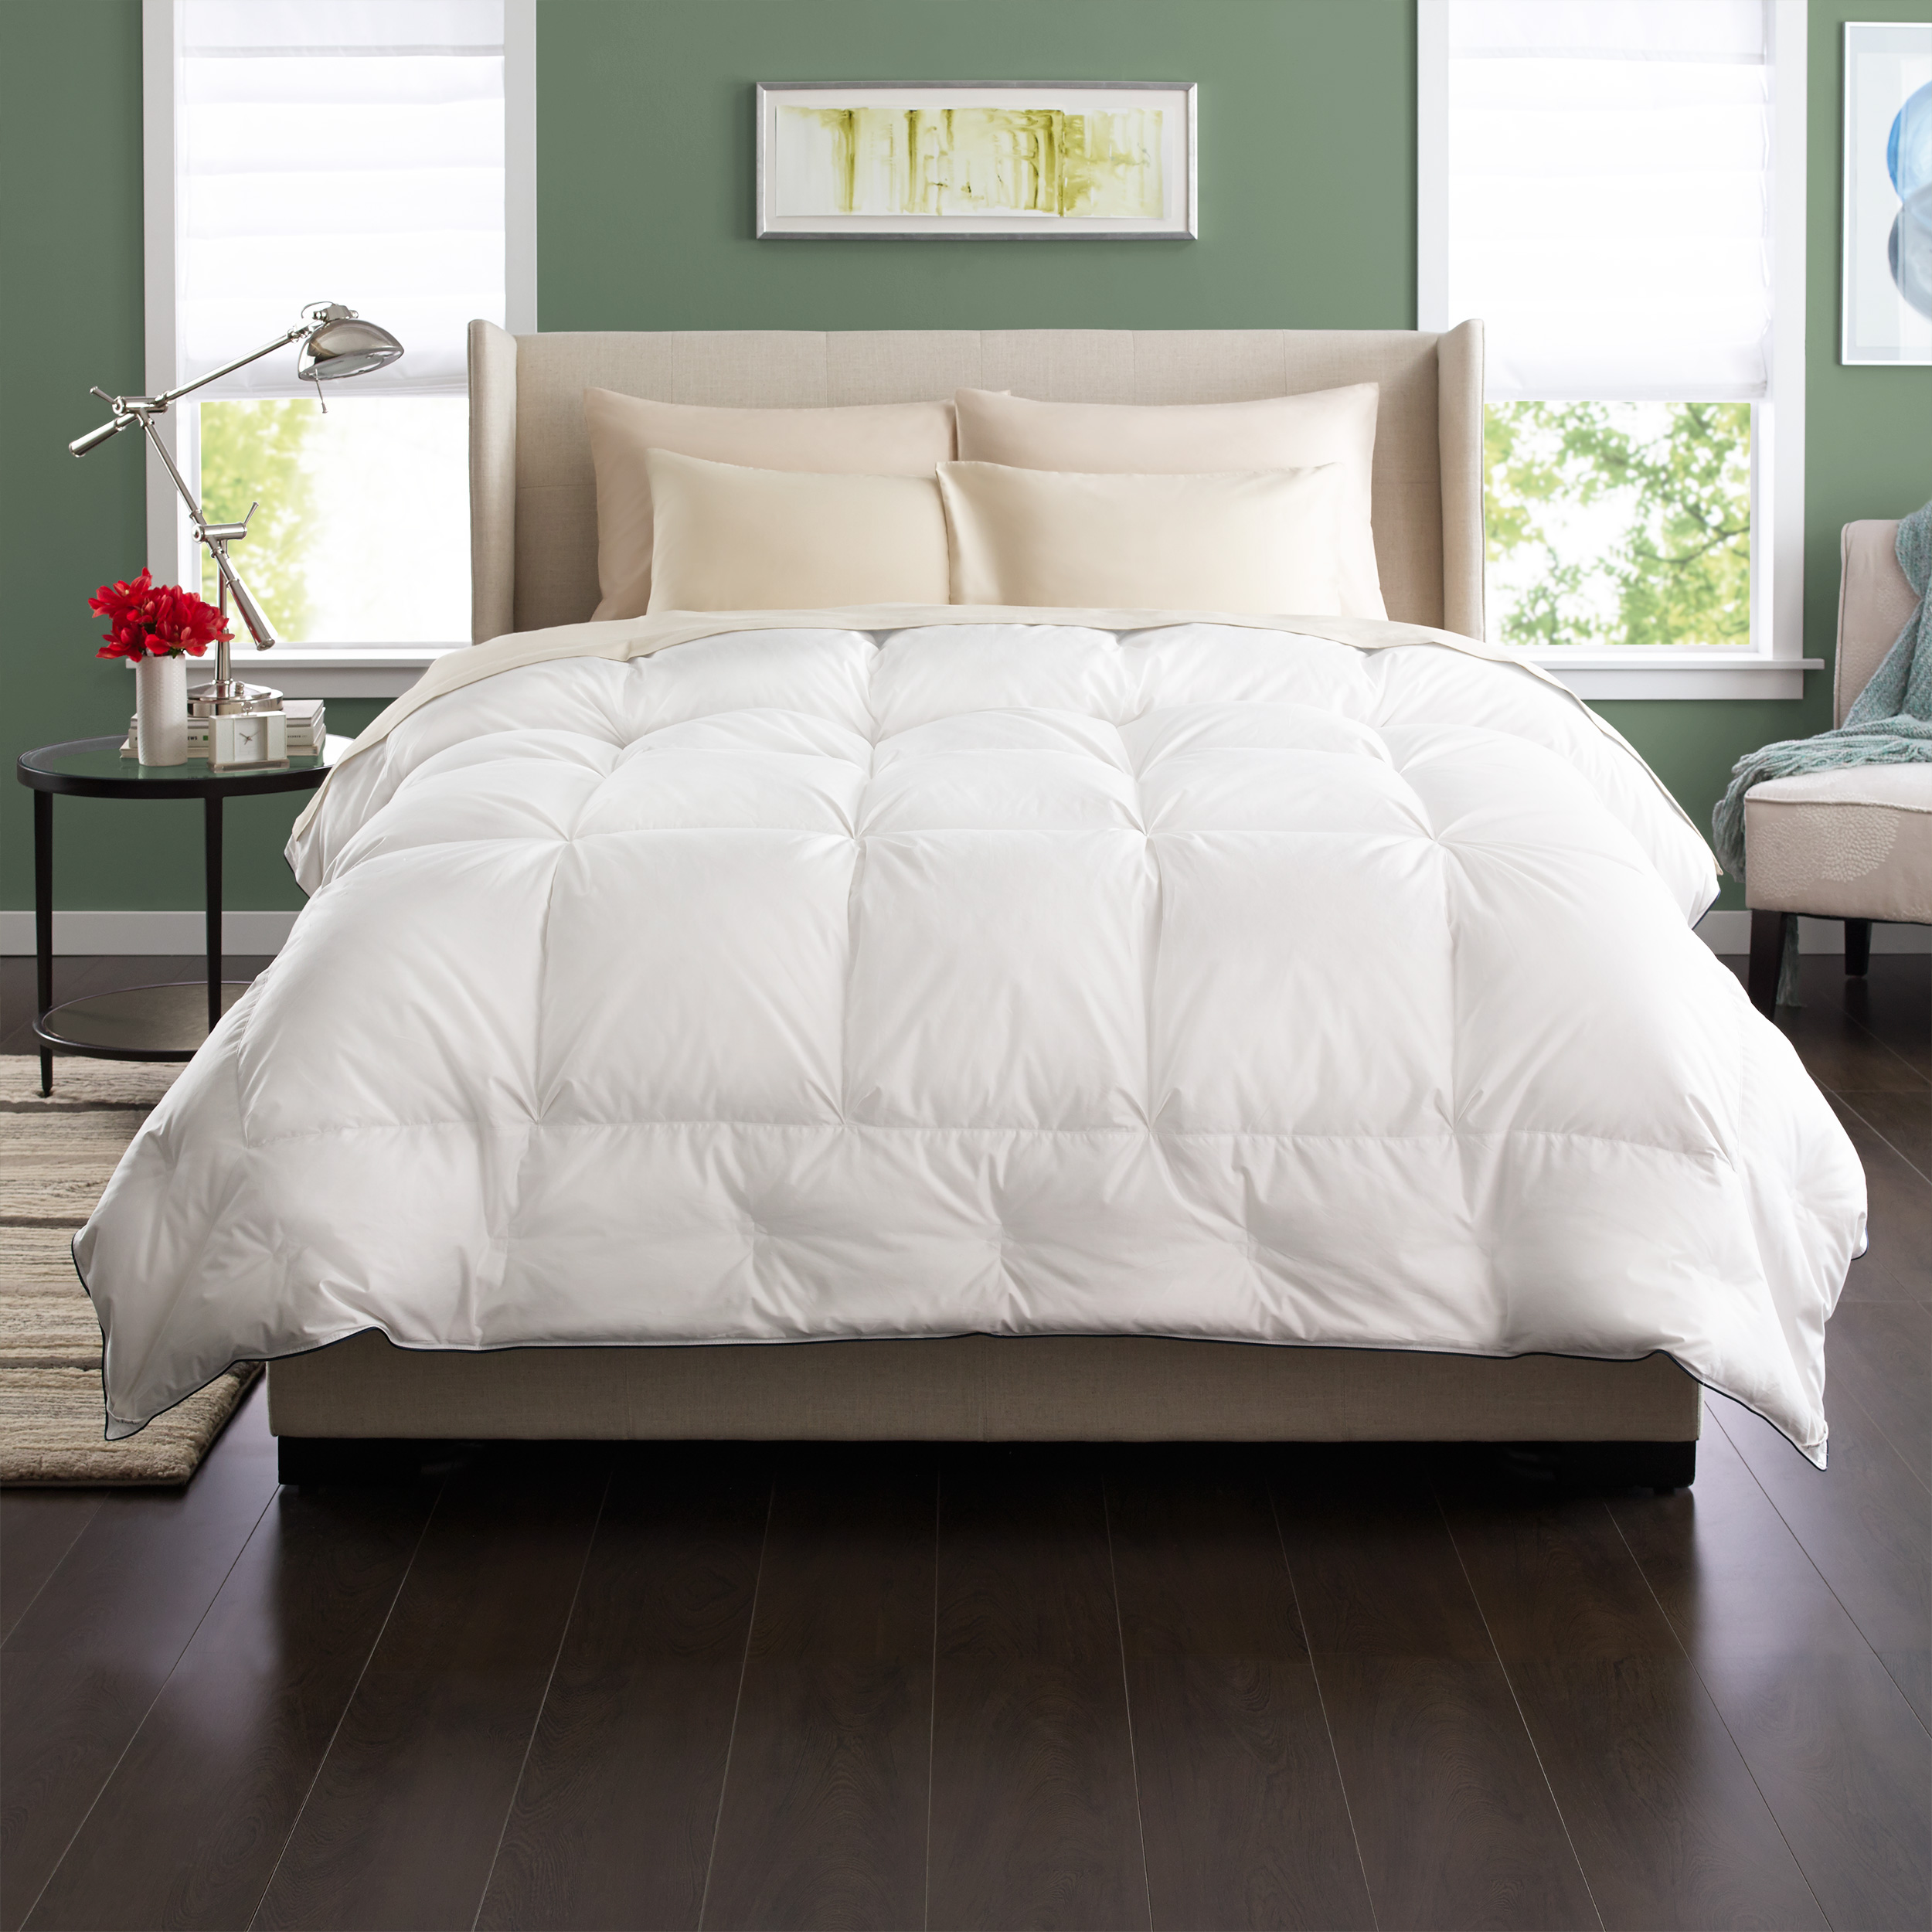 down kay comfort goose author best fill classic reviews page comforter alternative heavy macys white natural